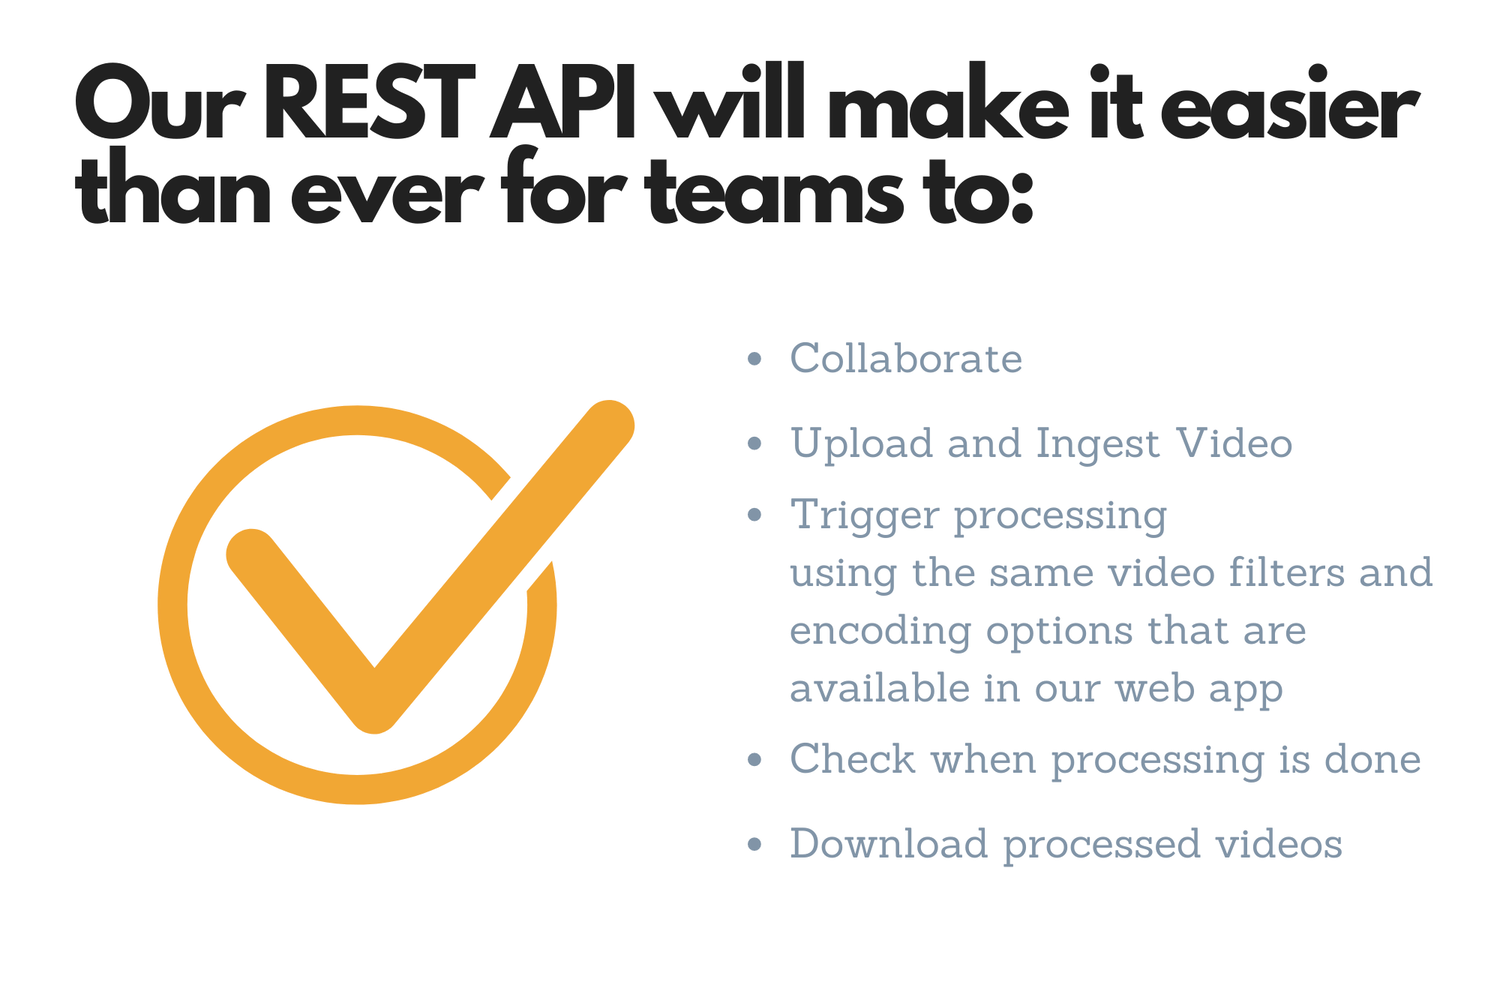 Graphic illustration of REST API features and benefits.